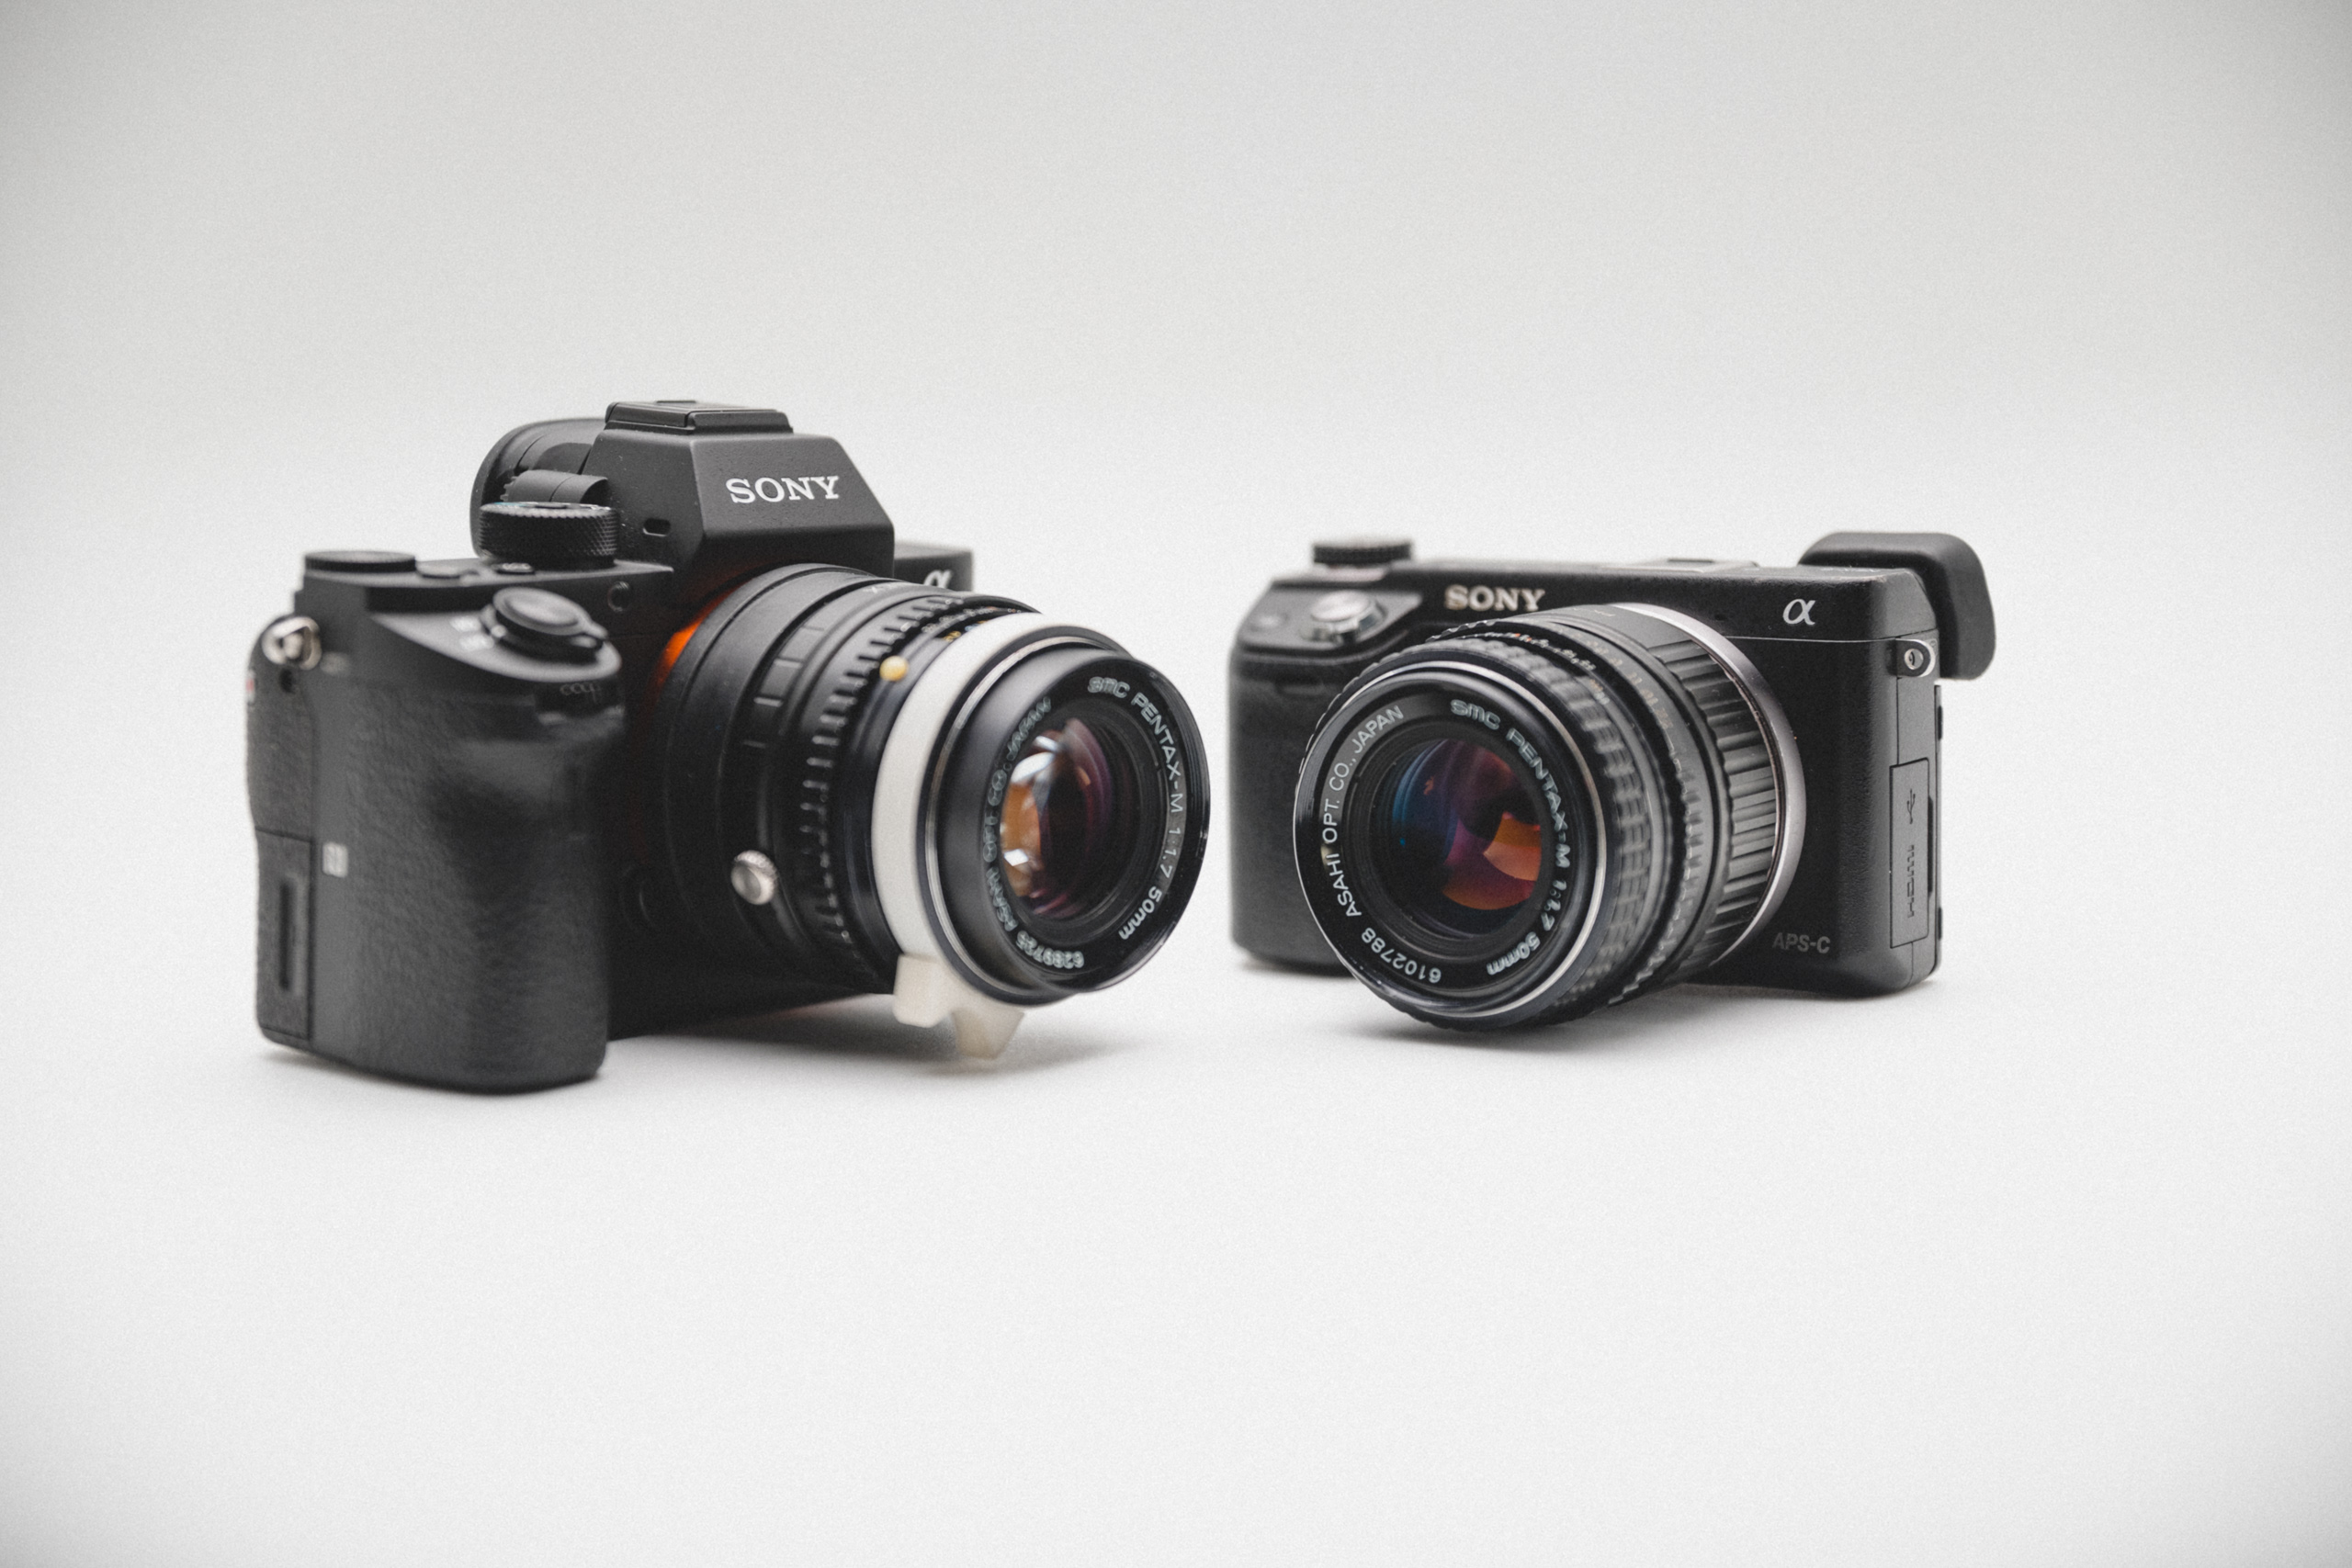 SONY NEX6 vs SONY A7R2 size comparison